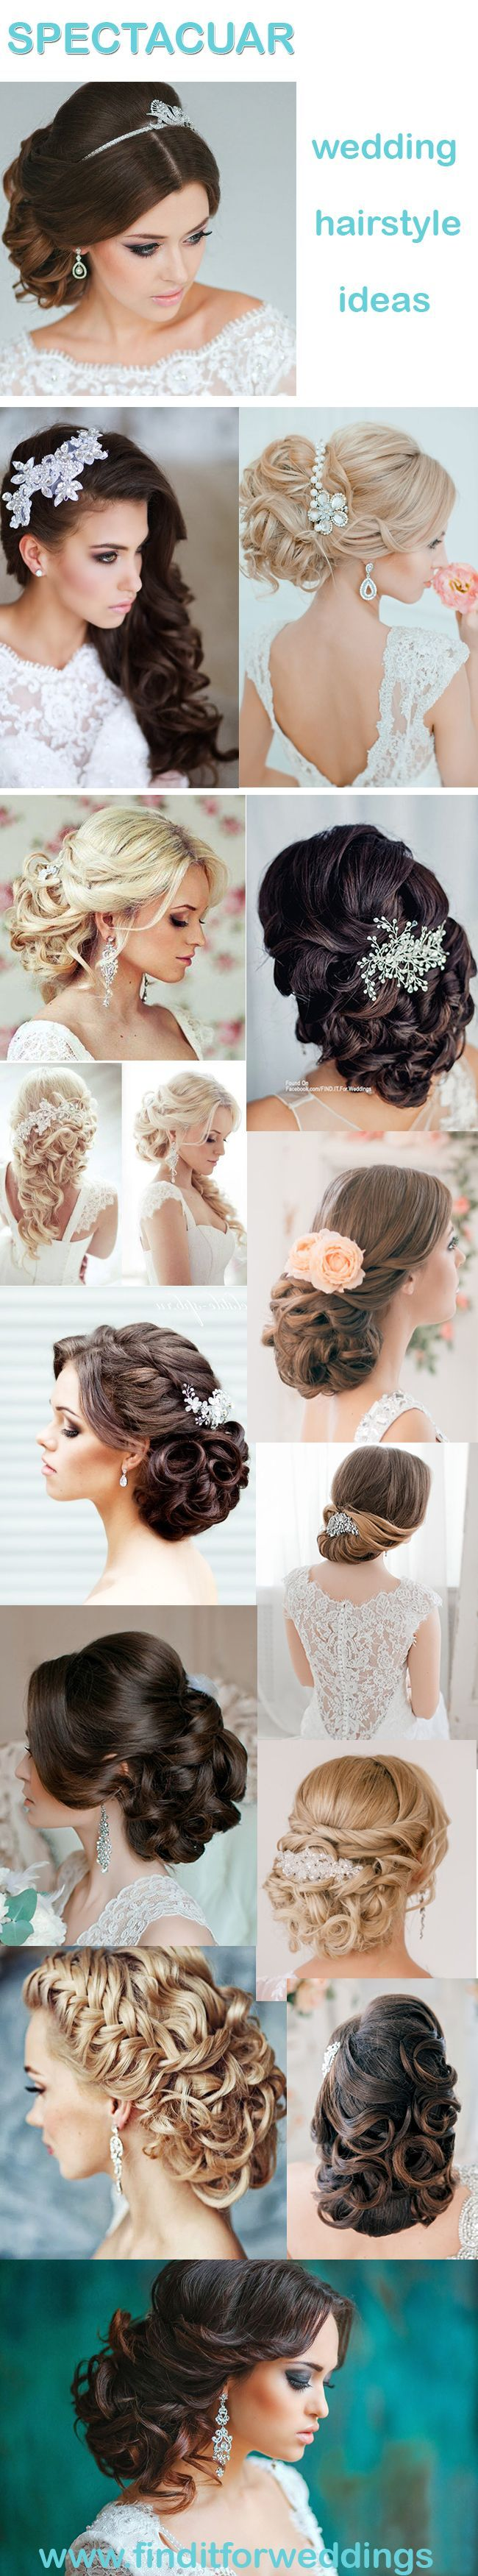 Stunning wedding hairstyles for every bride wedding